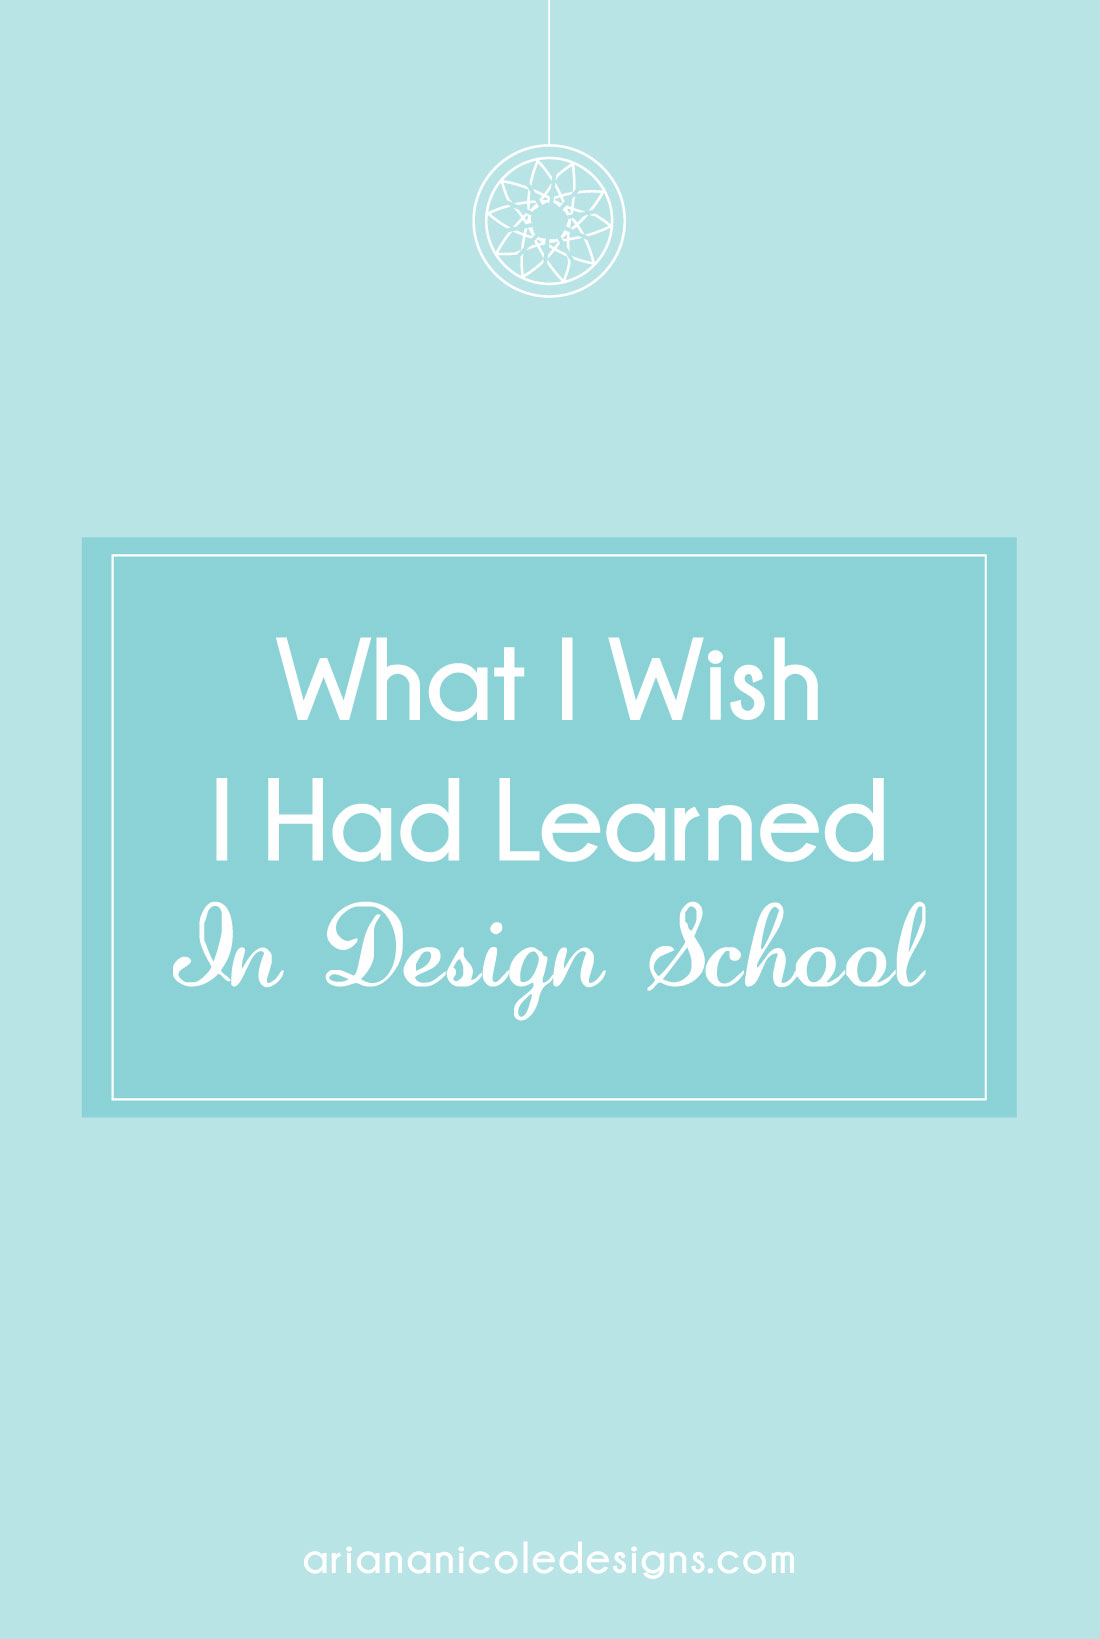 What_I_Wish_I_Had_Learned_In_Design_School-1100